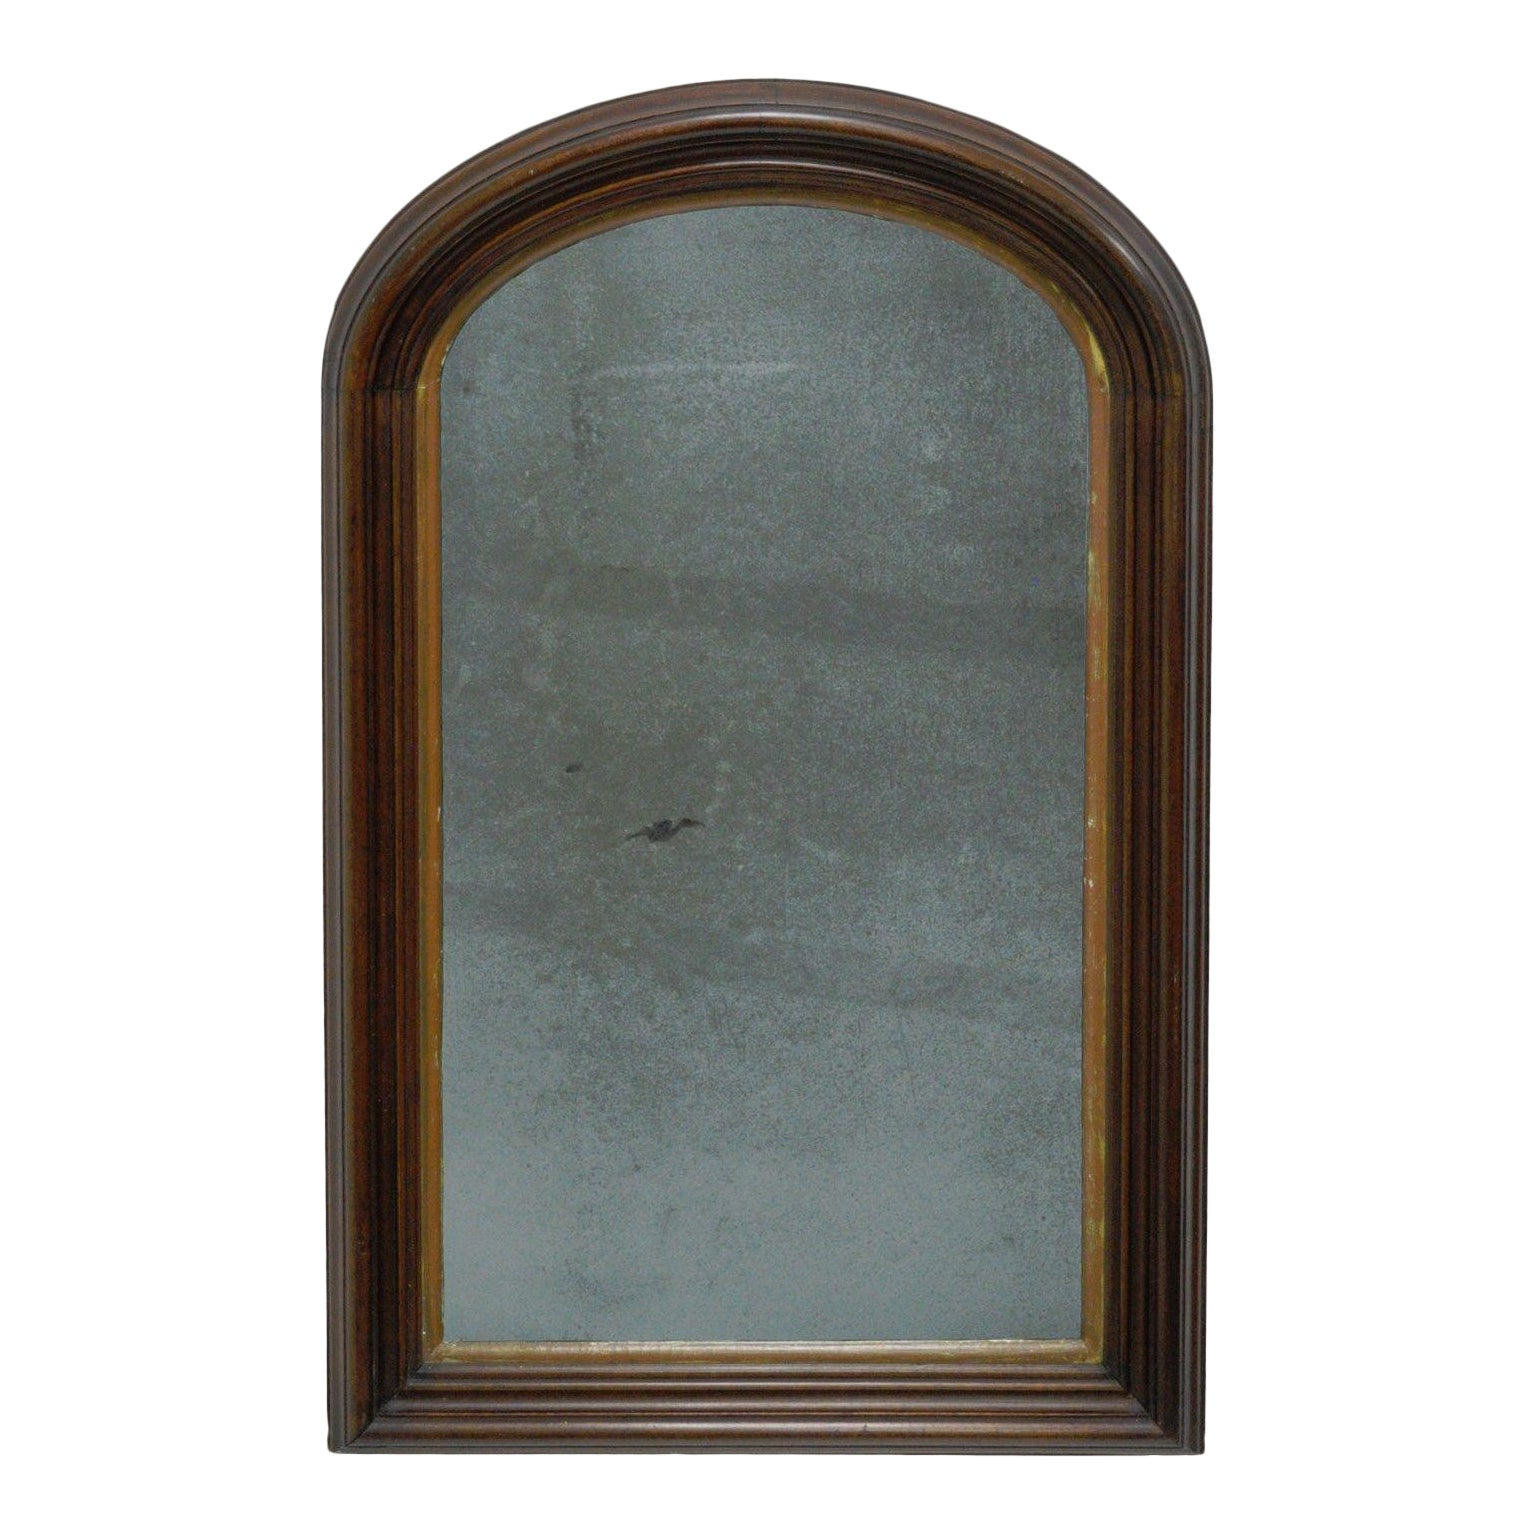 Antique American Empire Gany Looking Glass Ogee Wall Mirror Arch Frame 31x20 Chairish